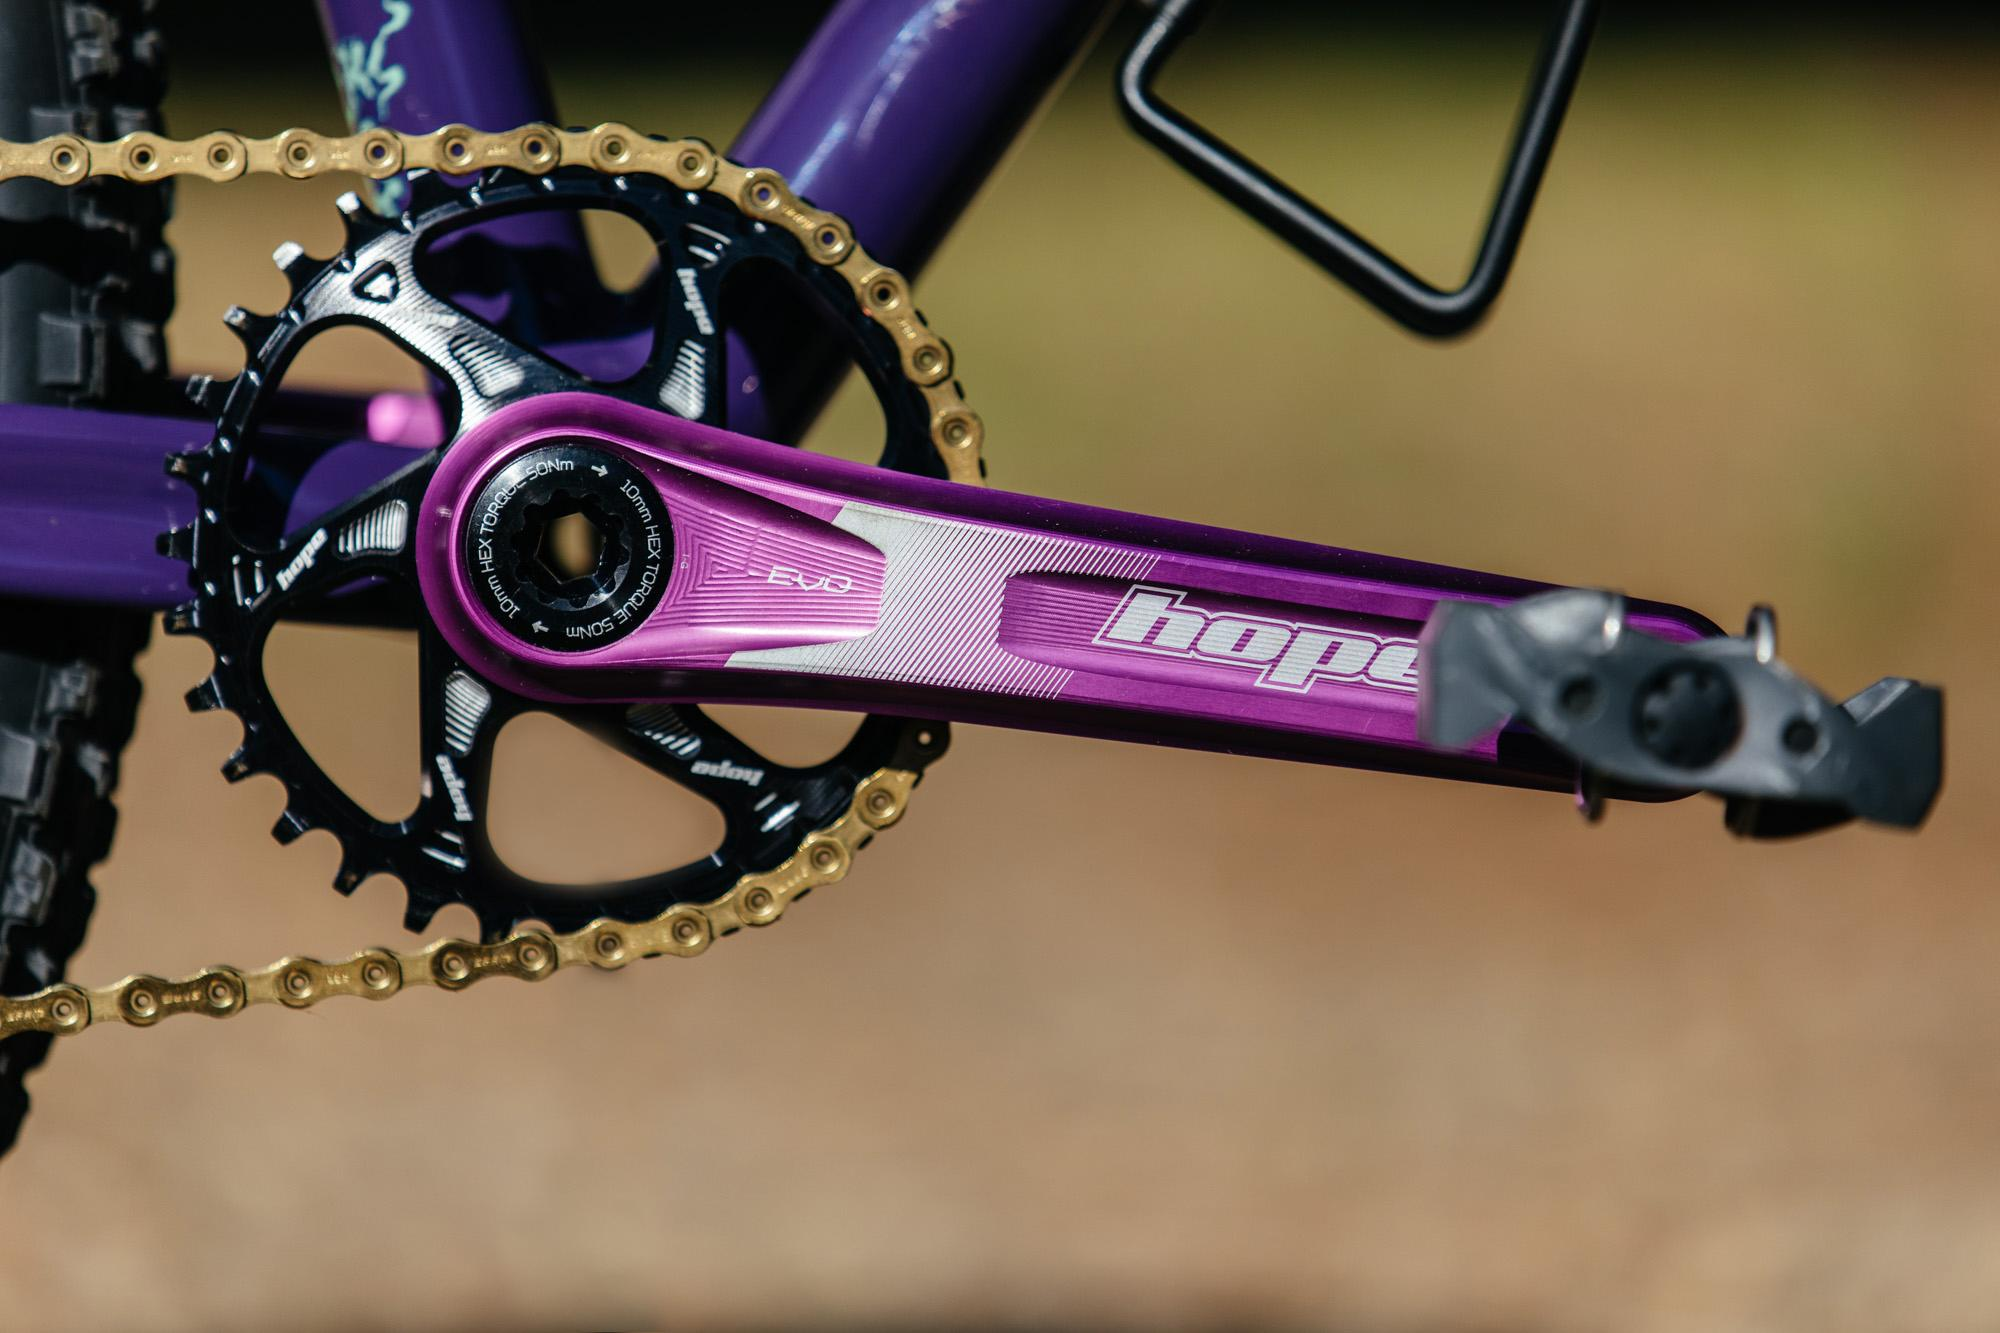 2019 Grinduro Moth Attack Fillet Brazed MTB